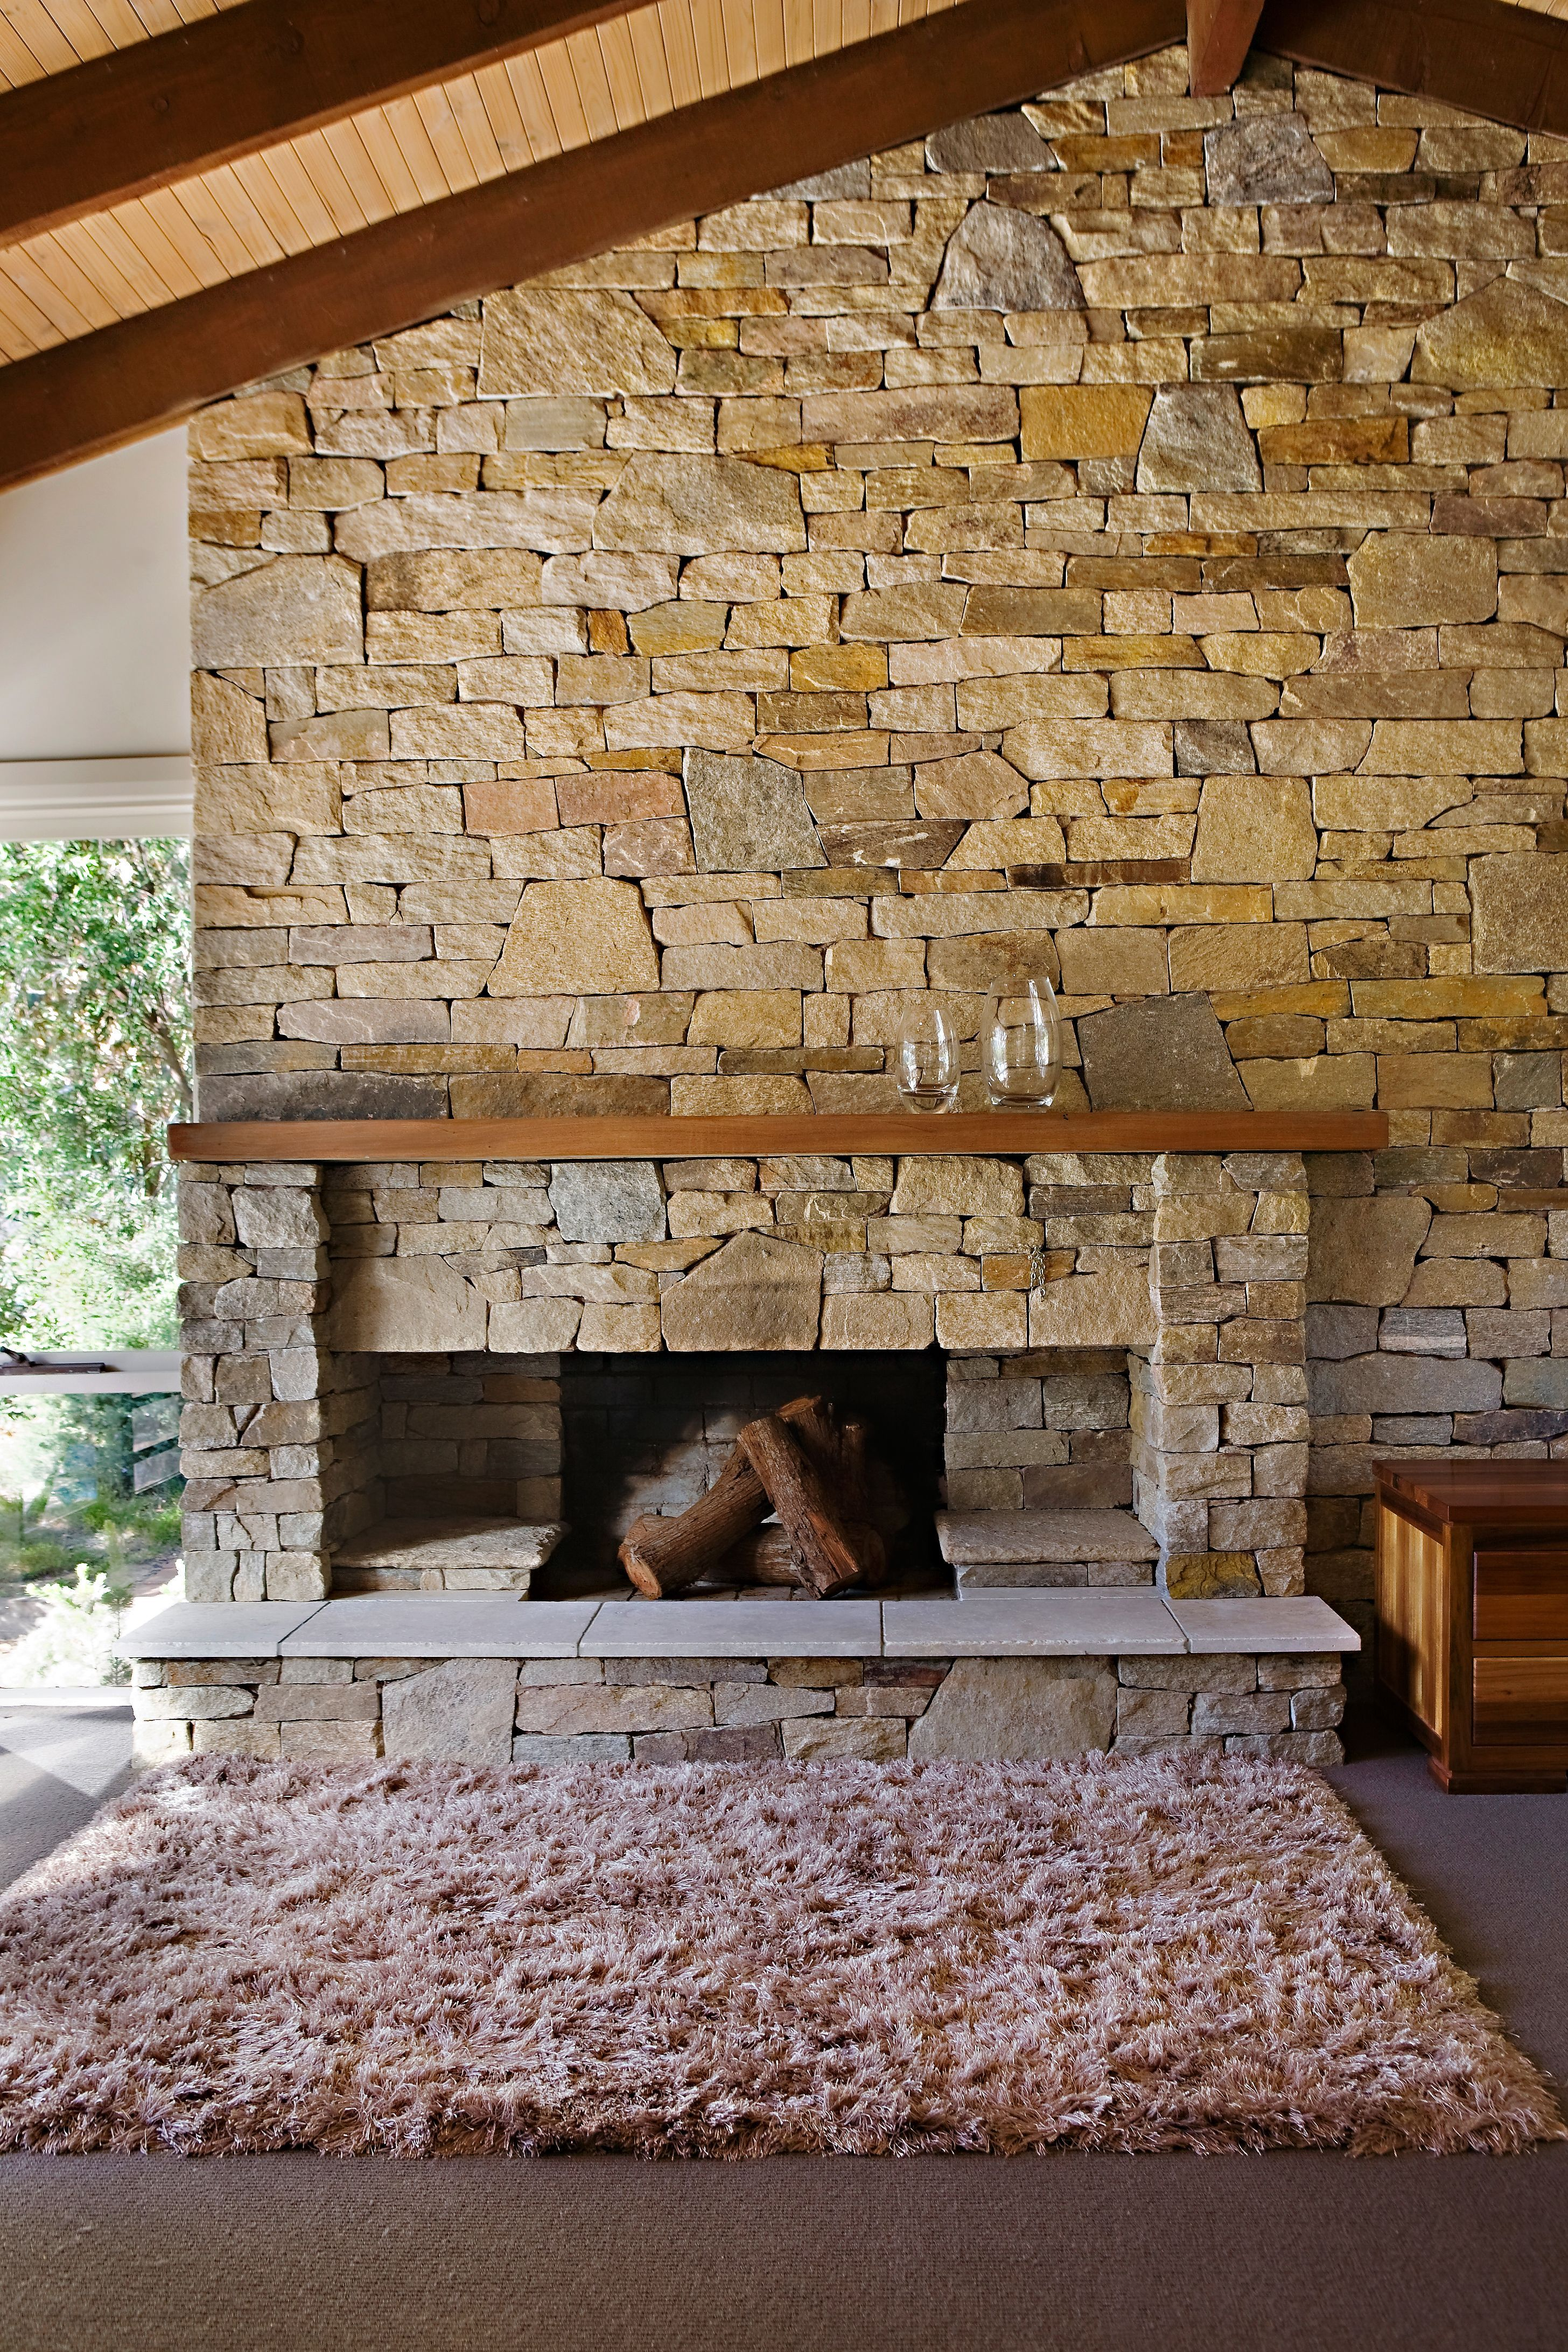 Eco Outdoor Alpine dry stone and Howqua free form walling creates this charming indoor fireplace. Eco Outdoor | Rolling Stones Landscapes | Alpine dry stone ... & Eco Outdoor Alpine dry stone and Howqua free form walling creates ...